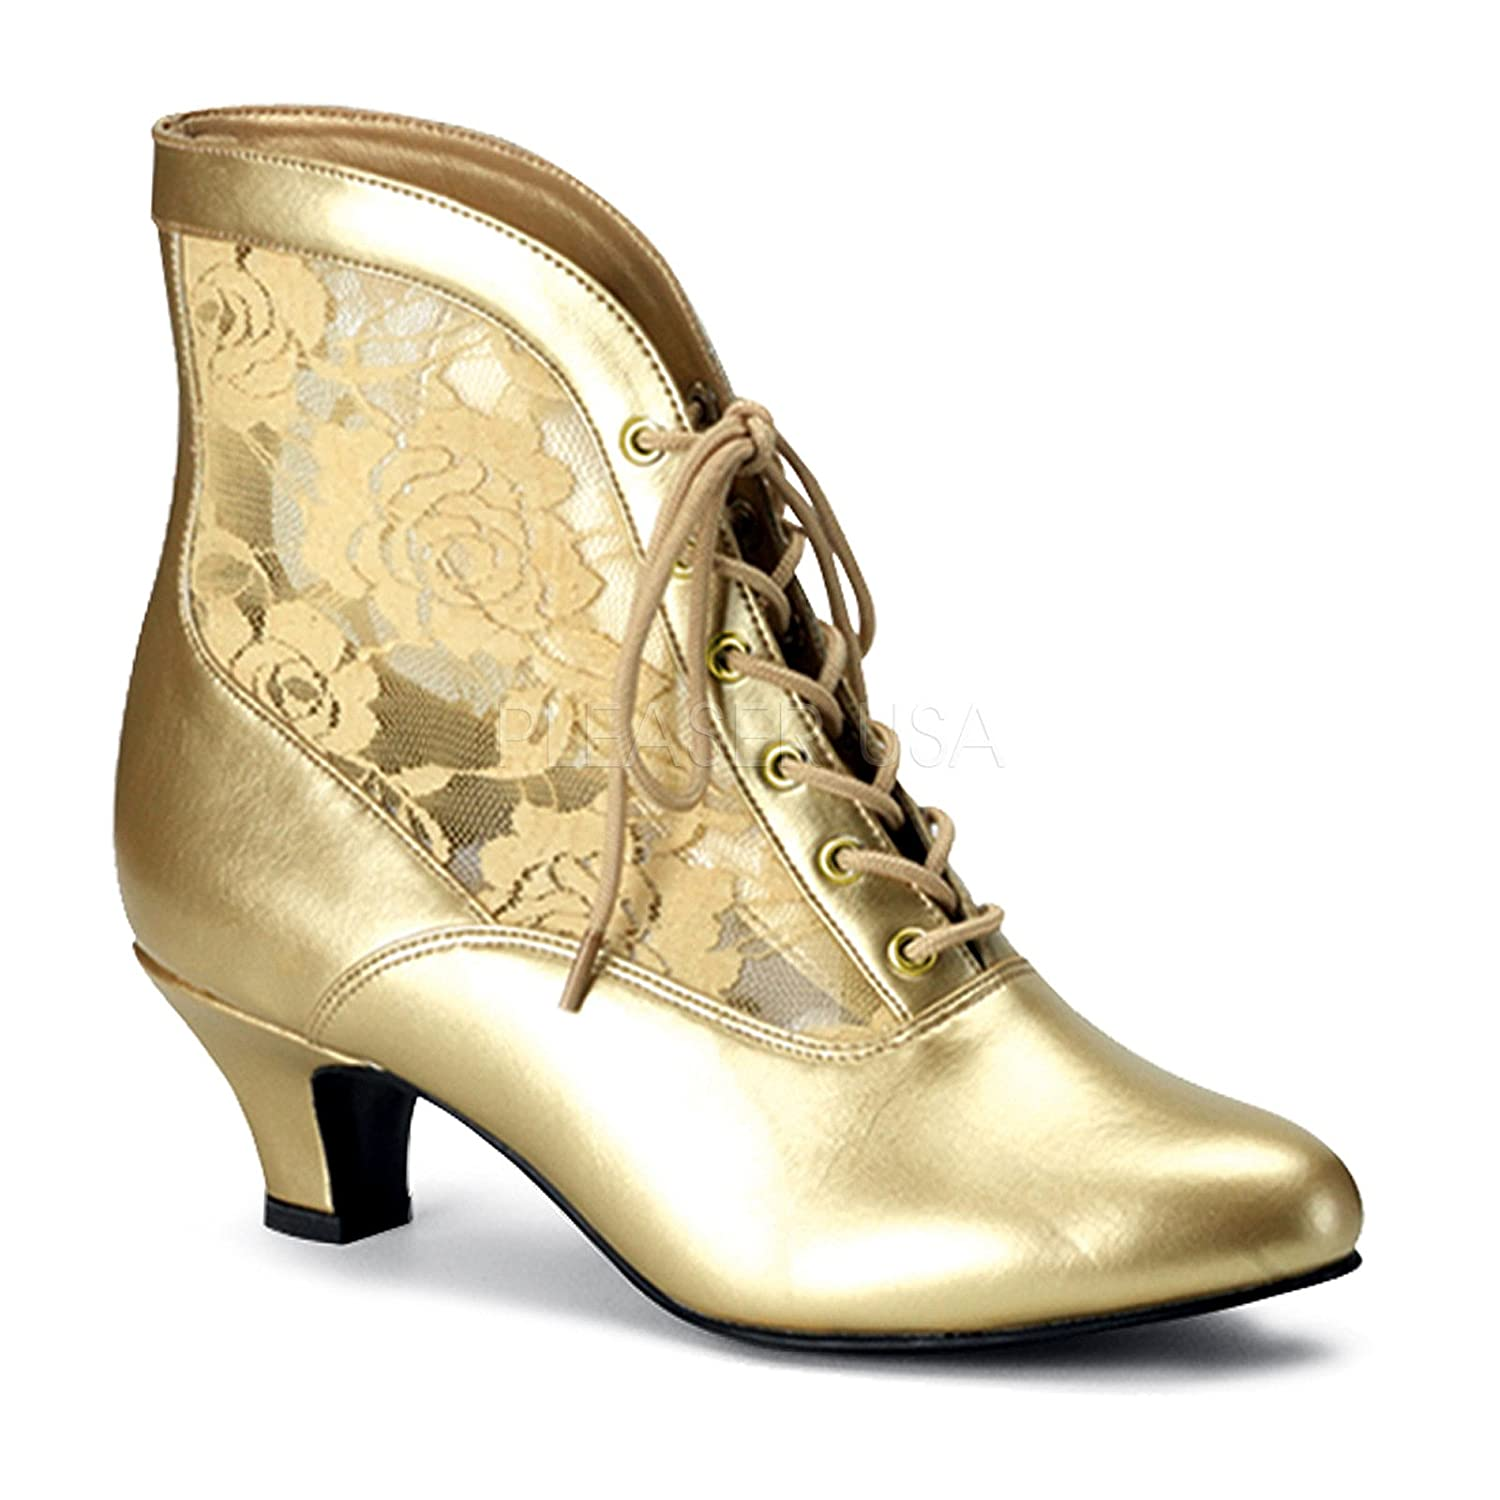 Victorian Shoes Granny Boots Lace Accent Saloon Girl Shoes 05 B0091I4S1Y 8 B(M) US|Gold